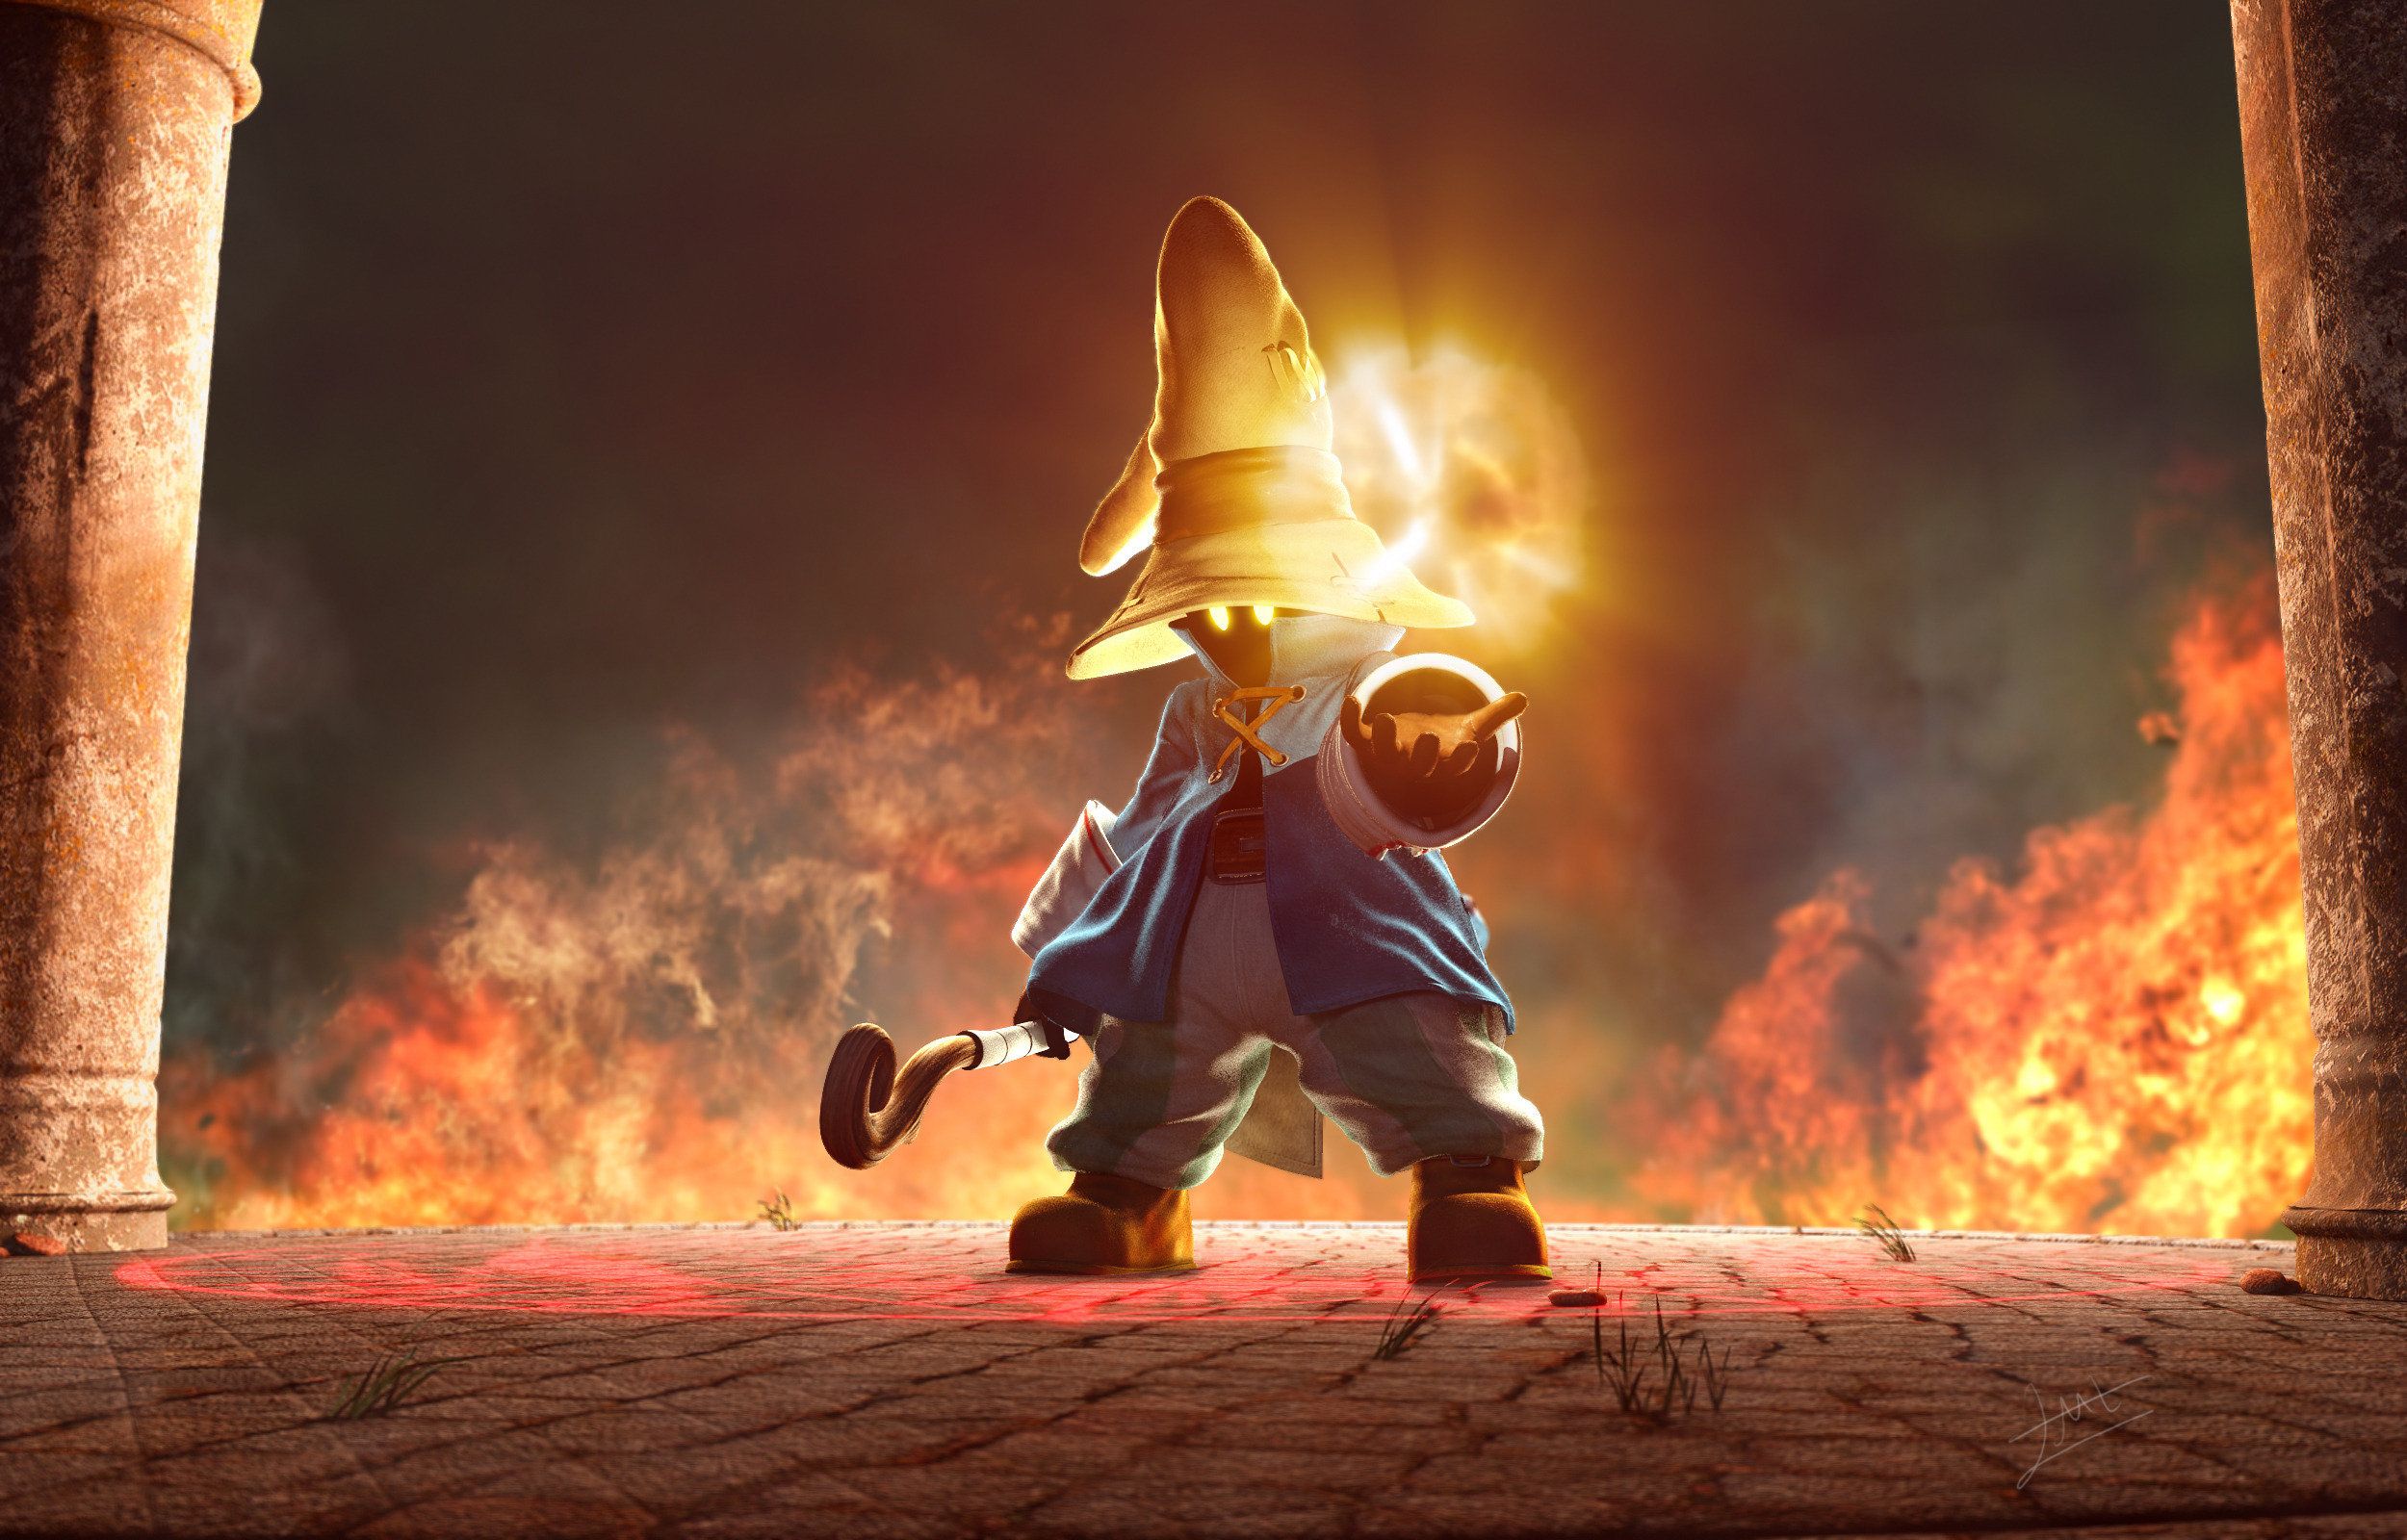 4 Black Mage Final Fantasy Hd Wallpapers Background Images